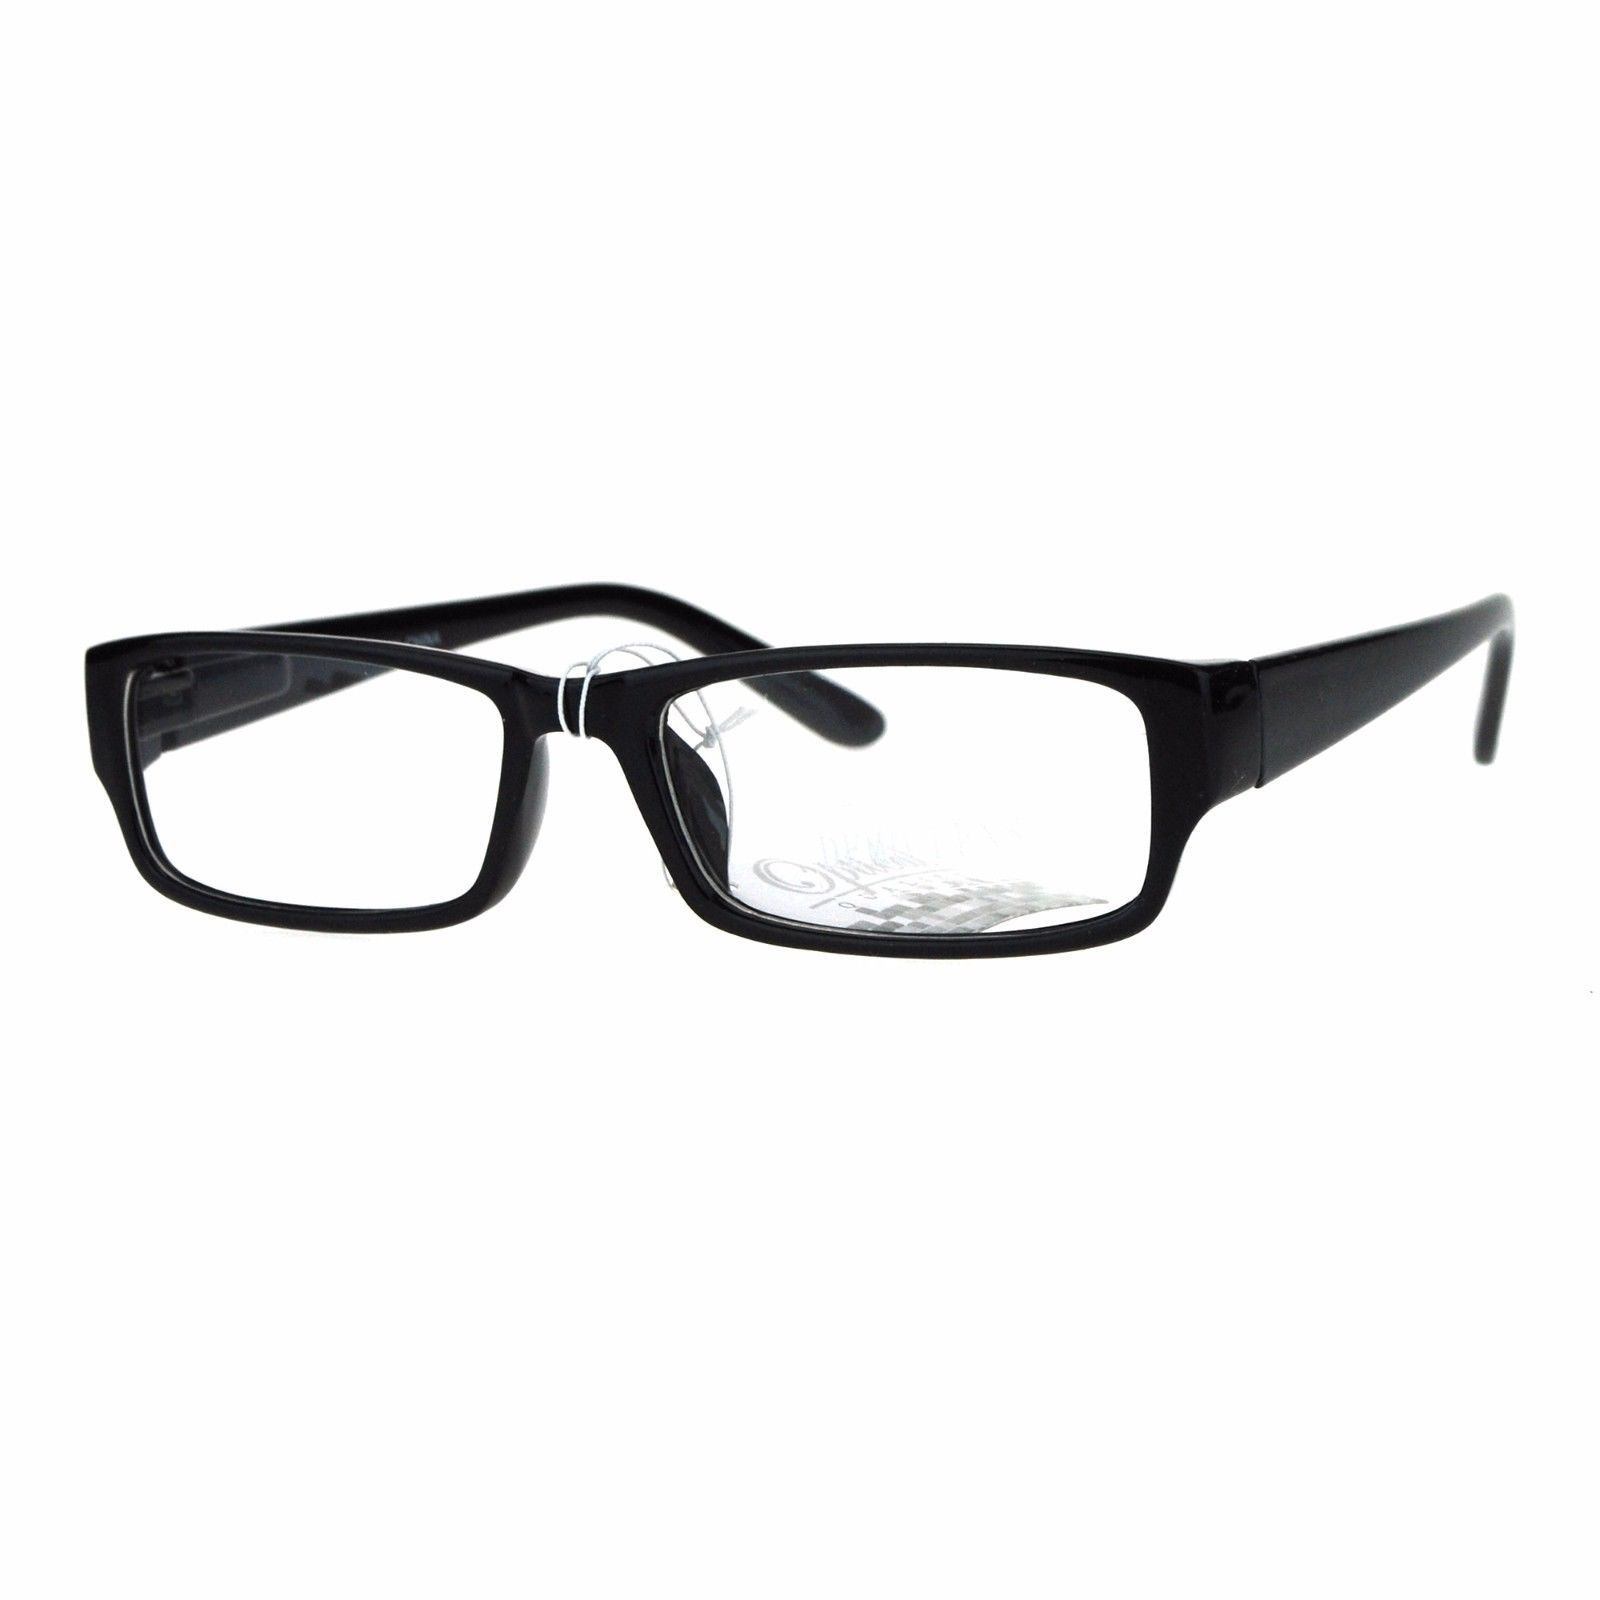 Clear Lens Glasses Classic Rectangular Frame Unisex Fashion Spring Hinge